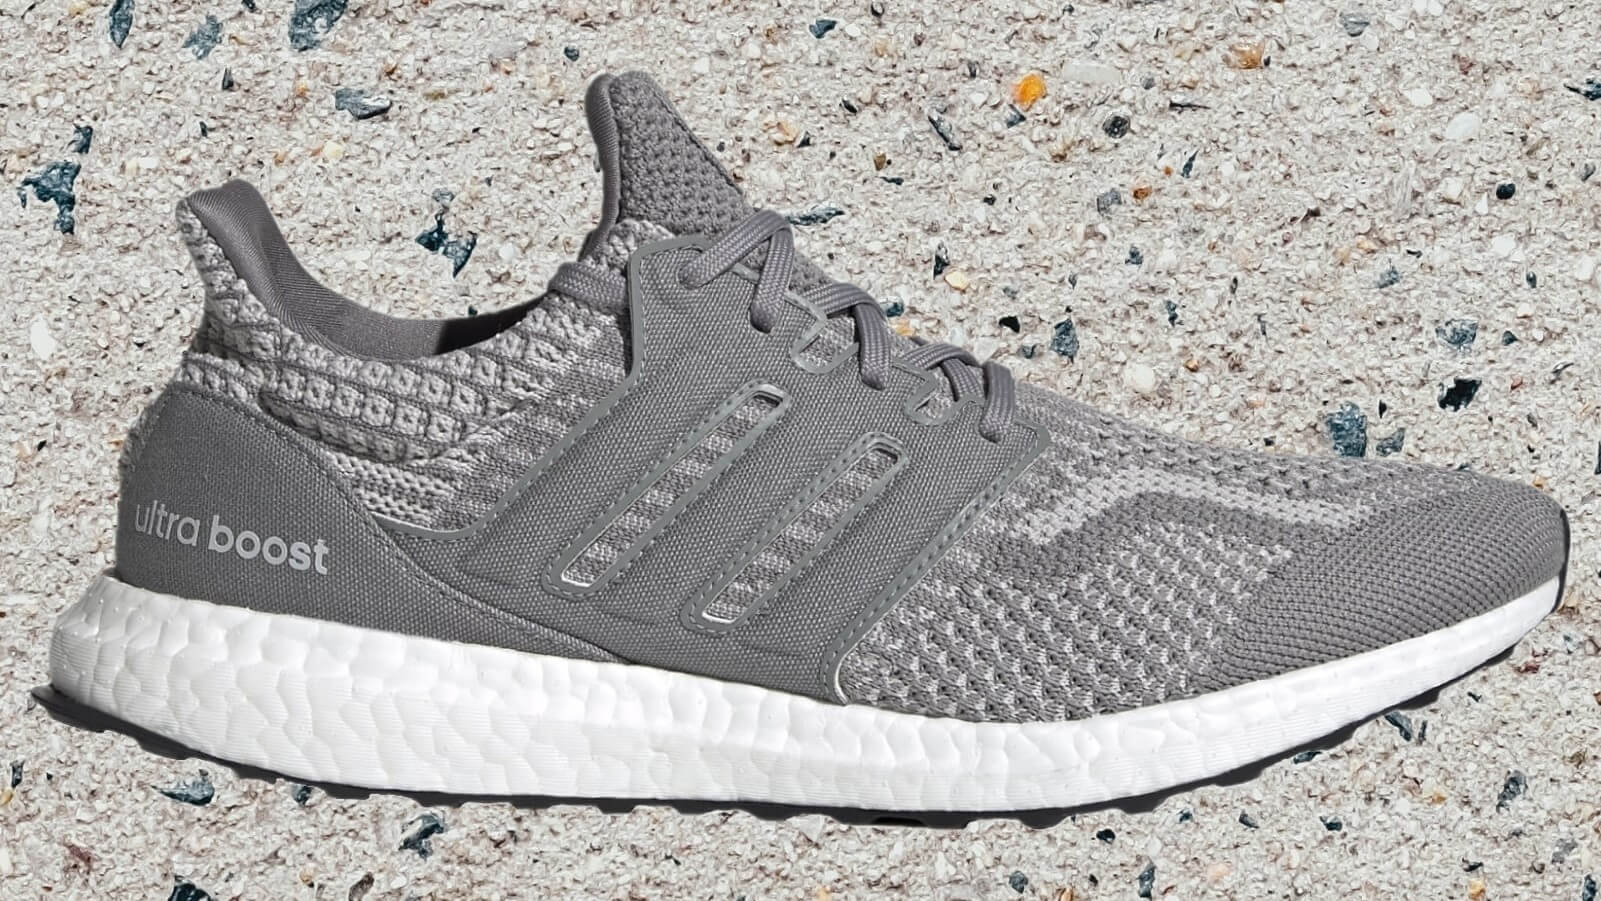 adidas Ultraboot 5.0 DNA running shoe for working on concrete